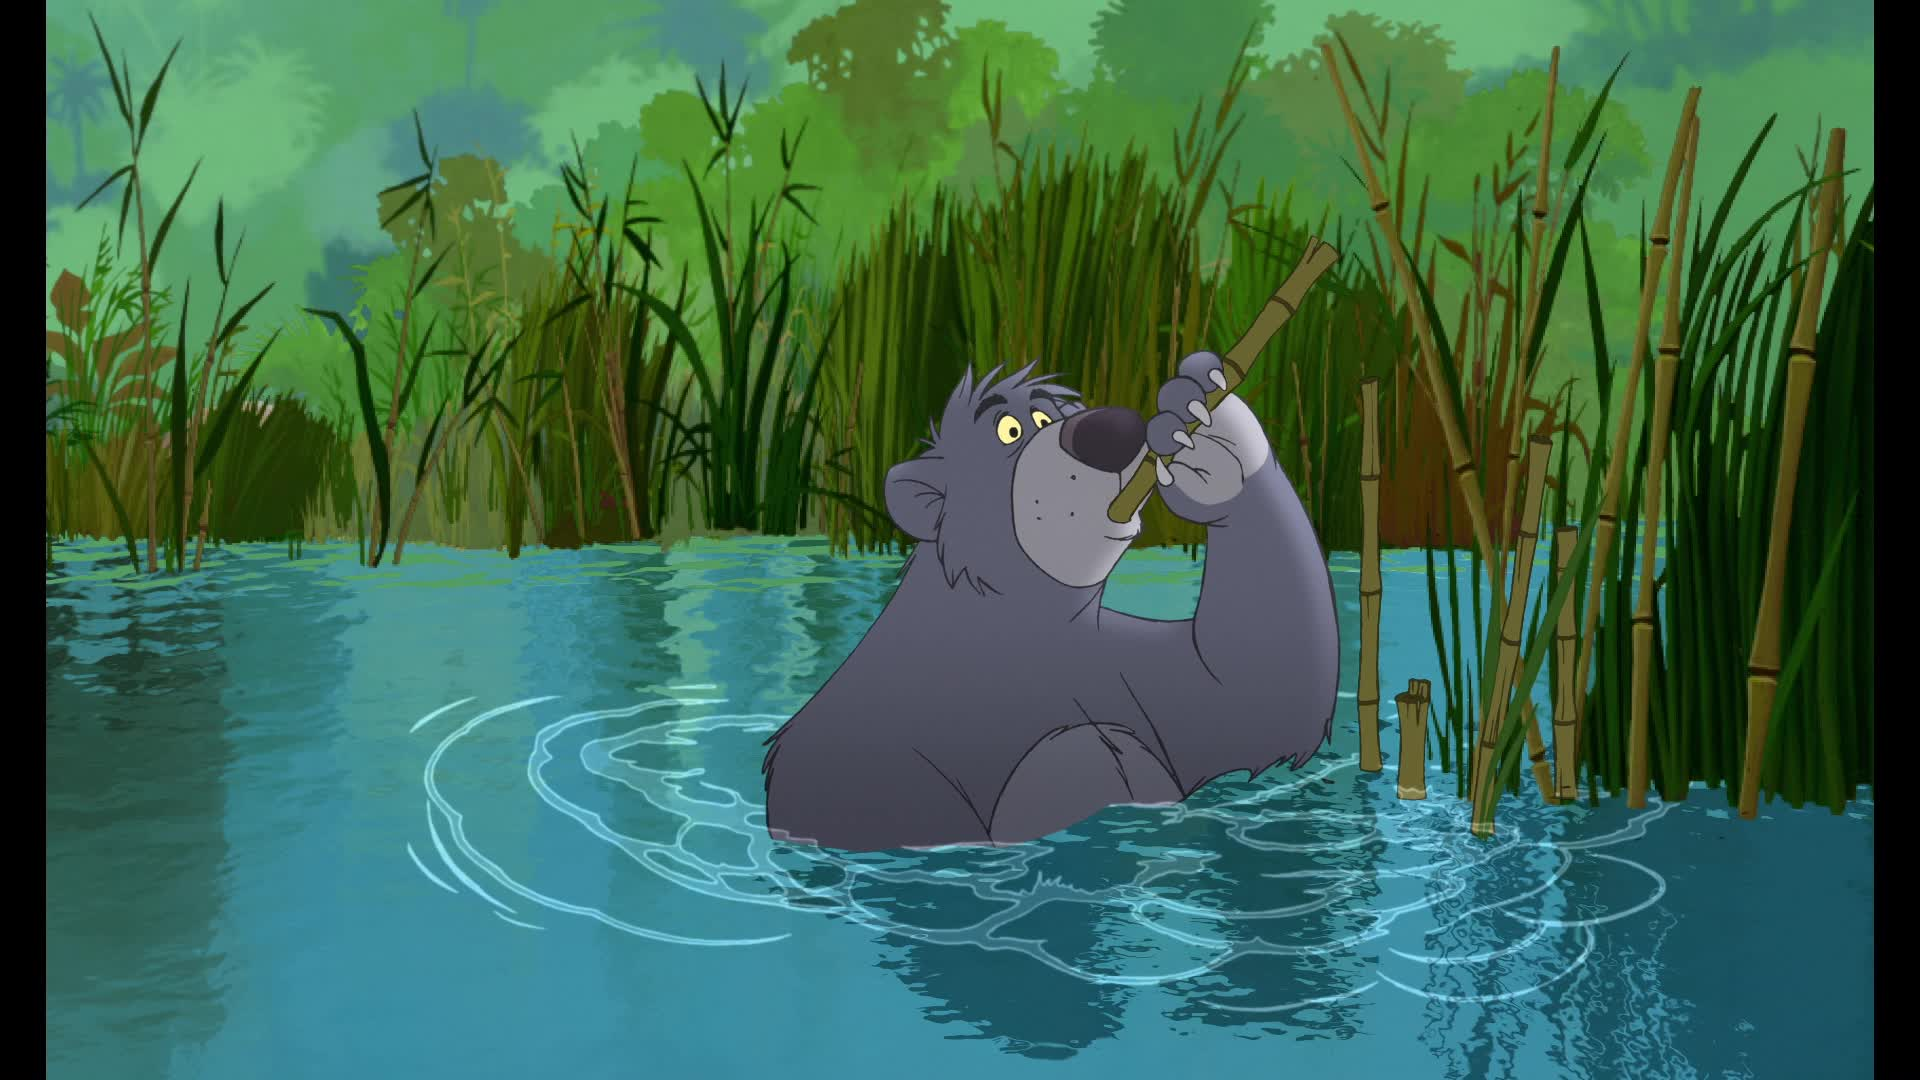 Brains Over Brawn Quotes: The Jungle Book Quotes